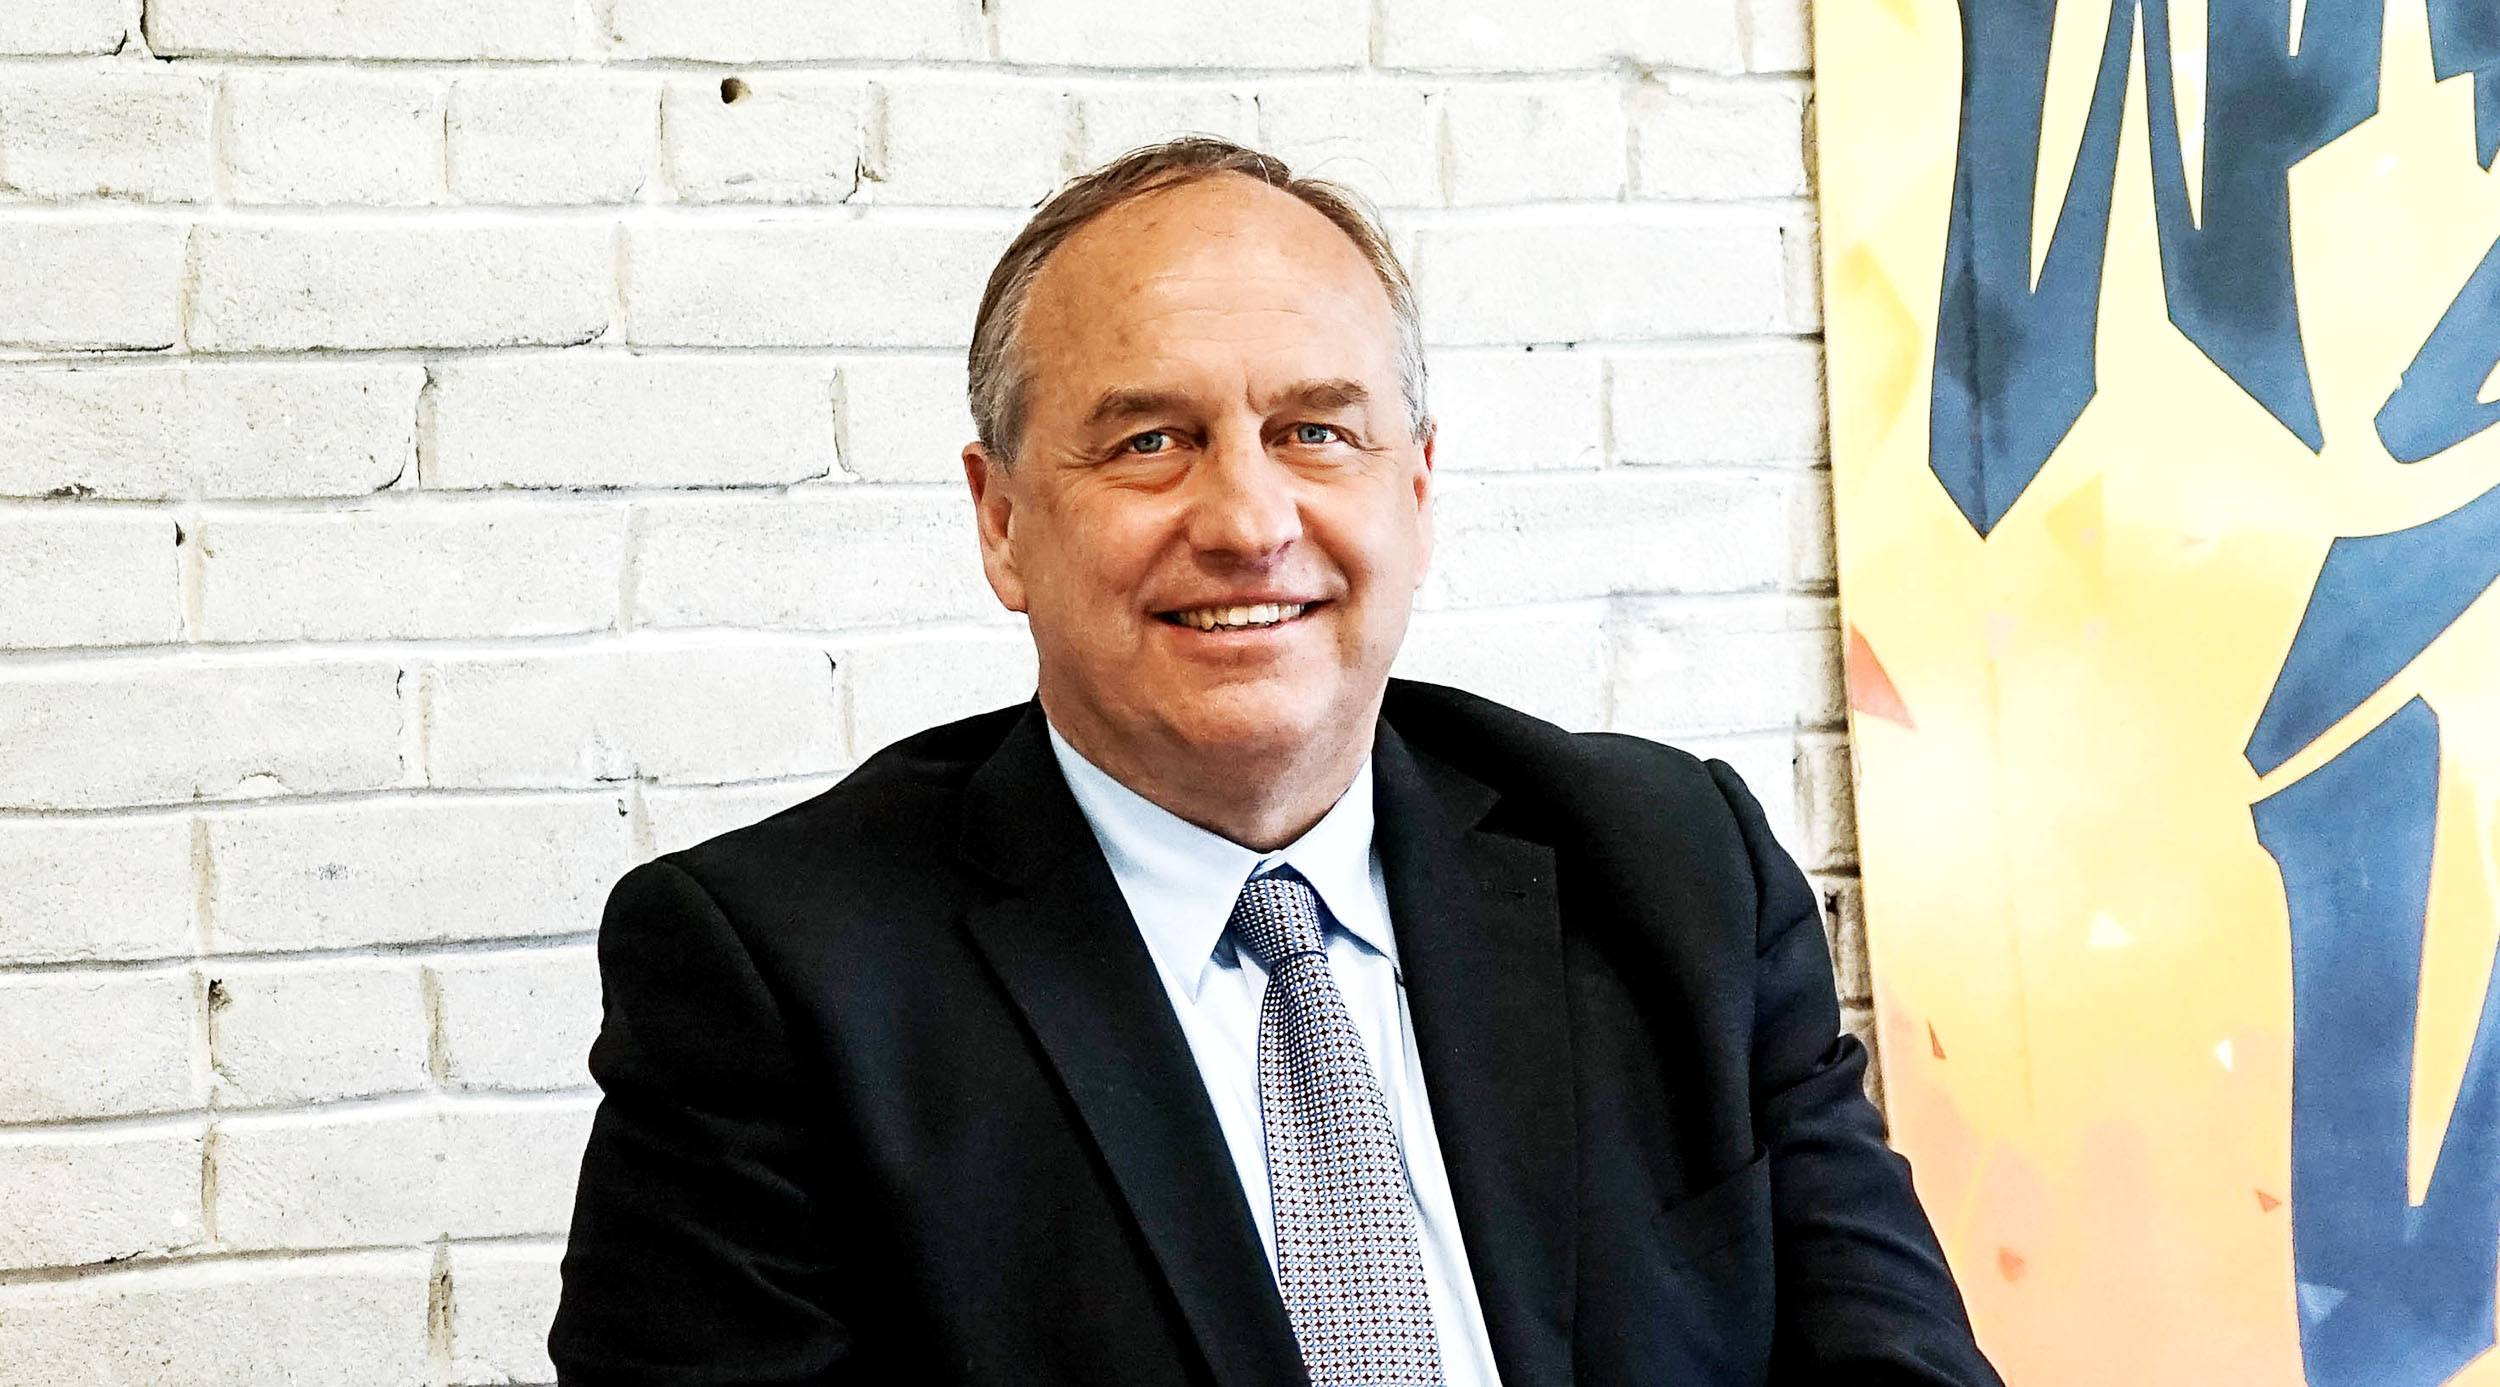 BC Greens leader Andrew Weaver: Google should build data centres in cold climate BC